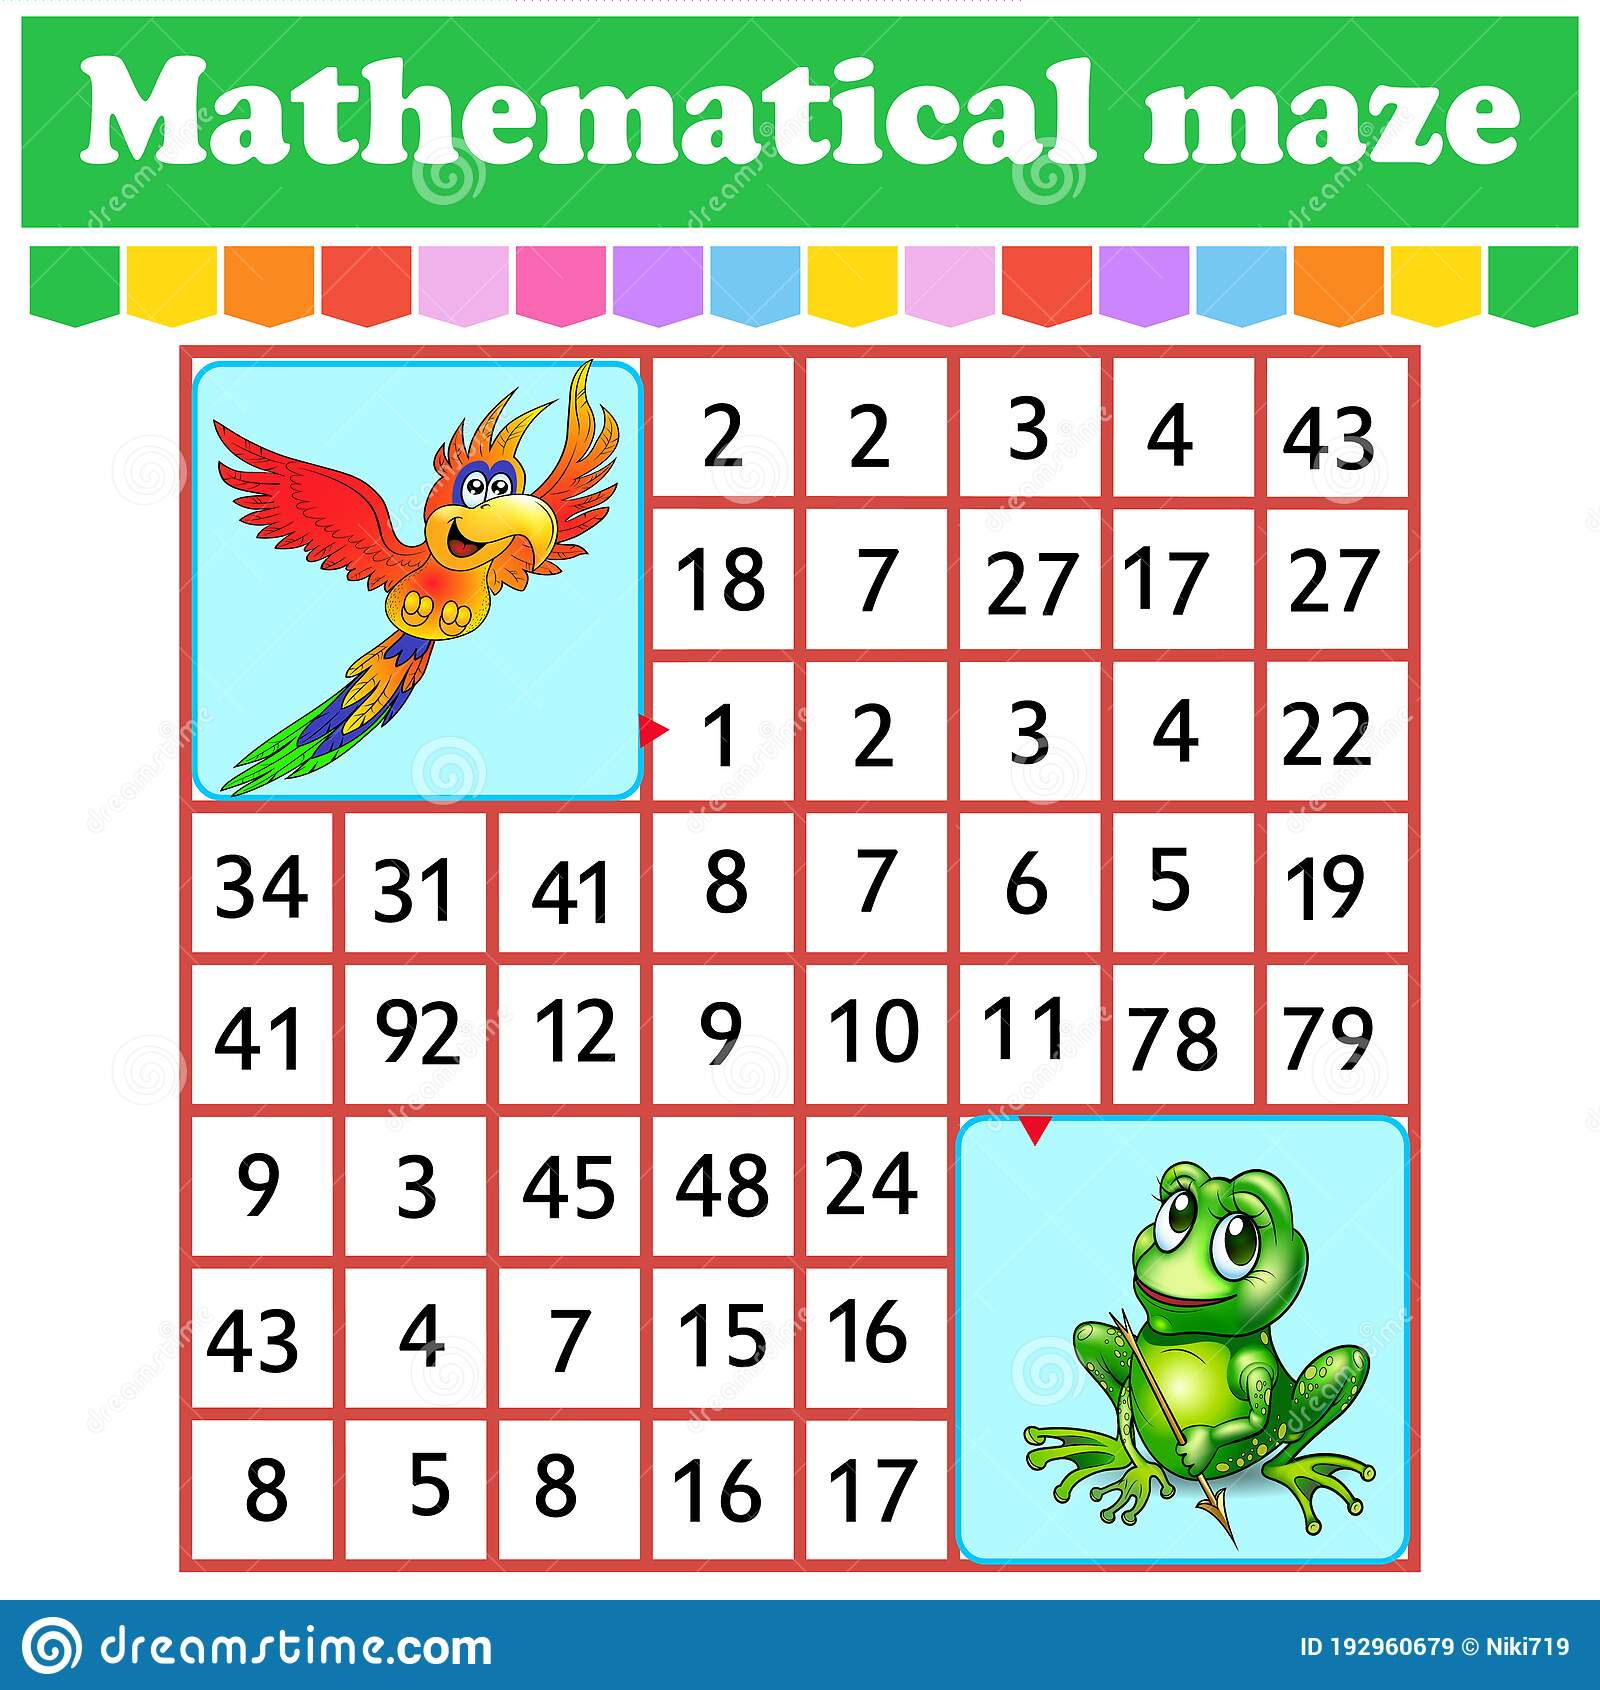 Mathematical Rectangle Maze Parrot And Frog Game For